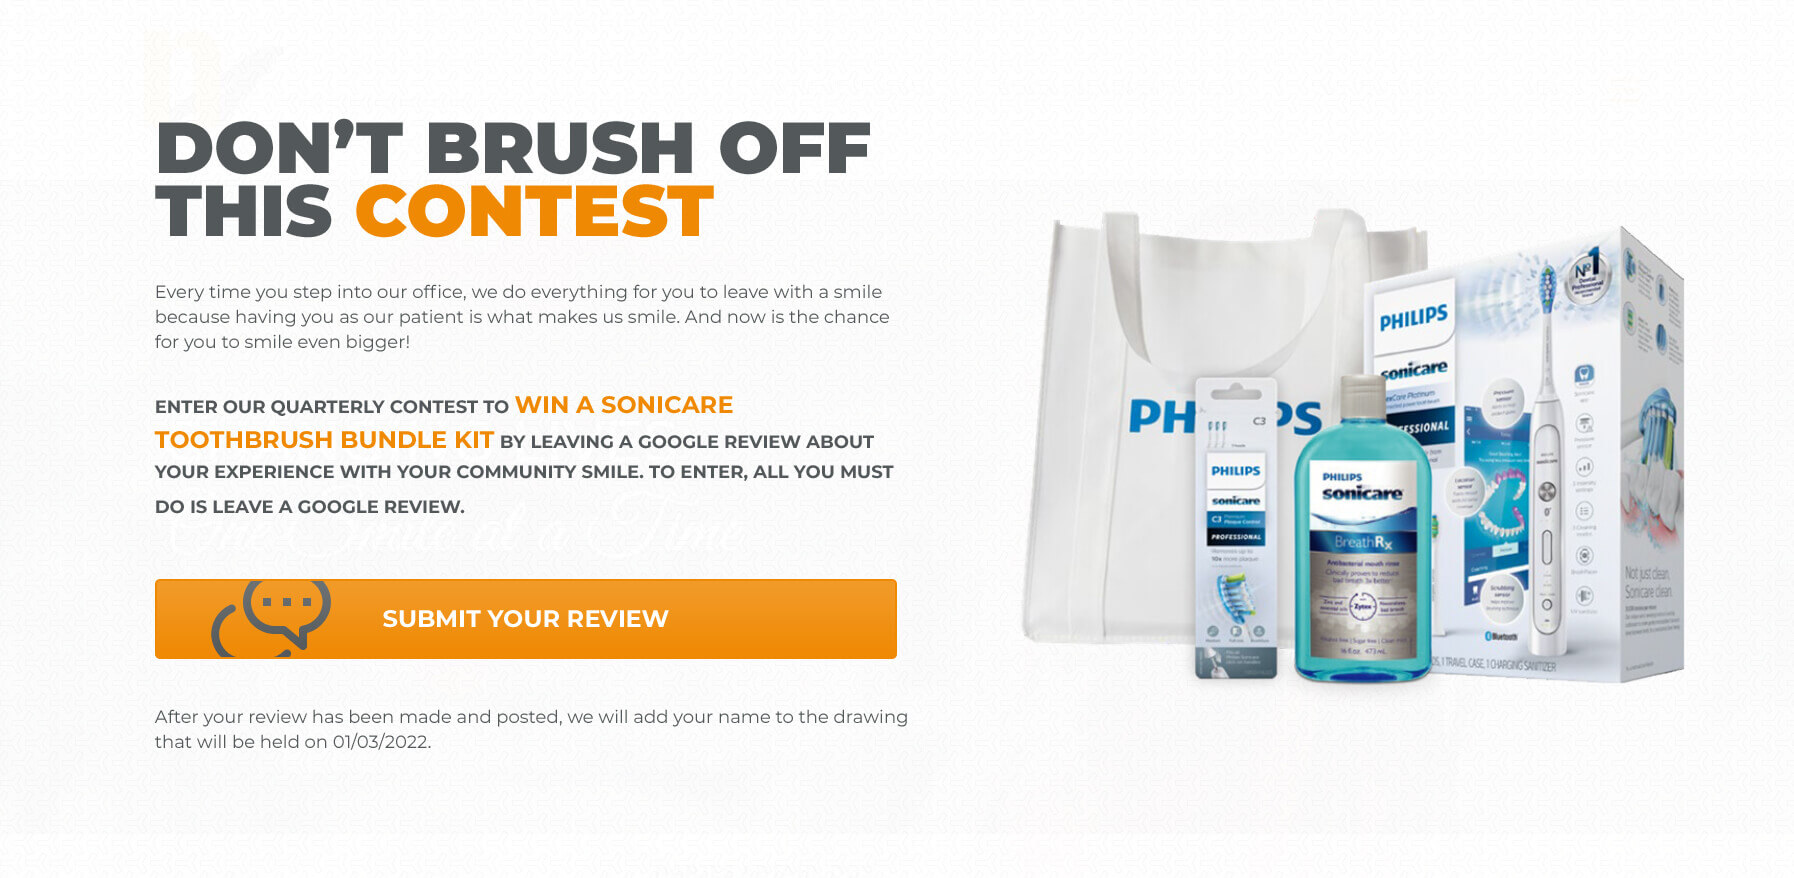 Don't Brush Off This Contest! Every time you step into our office, we do everything for you to leave with a smile because having you as our patient is what makes us smile. And now is the chance for you to smile even bigger! Enter our quarterly contest to win a Sonicare Toothbrush Bundle Kit by leaving a Google Review about your experience with Your Community Smile. To enter, all you must do is leave a Google Review. Click to submit your review. After your review has been made and posted, we will add your name to the drawing that will be held on 01/03/2022.